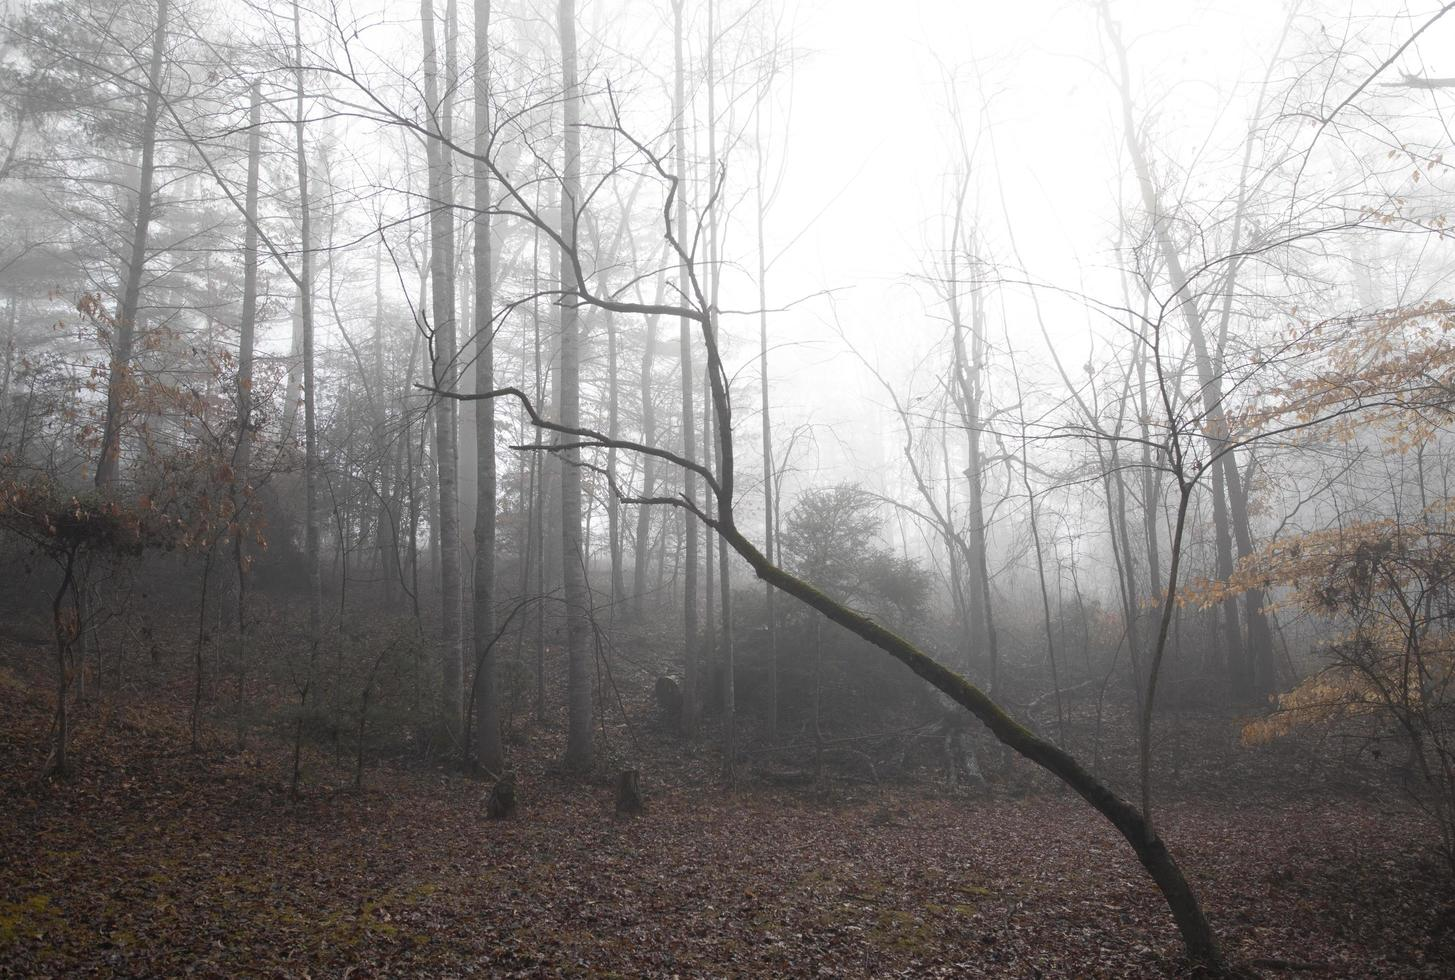 Rural woodland clearing on a foggy winter morning photo